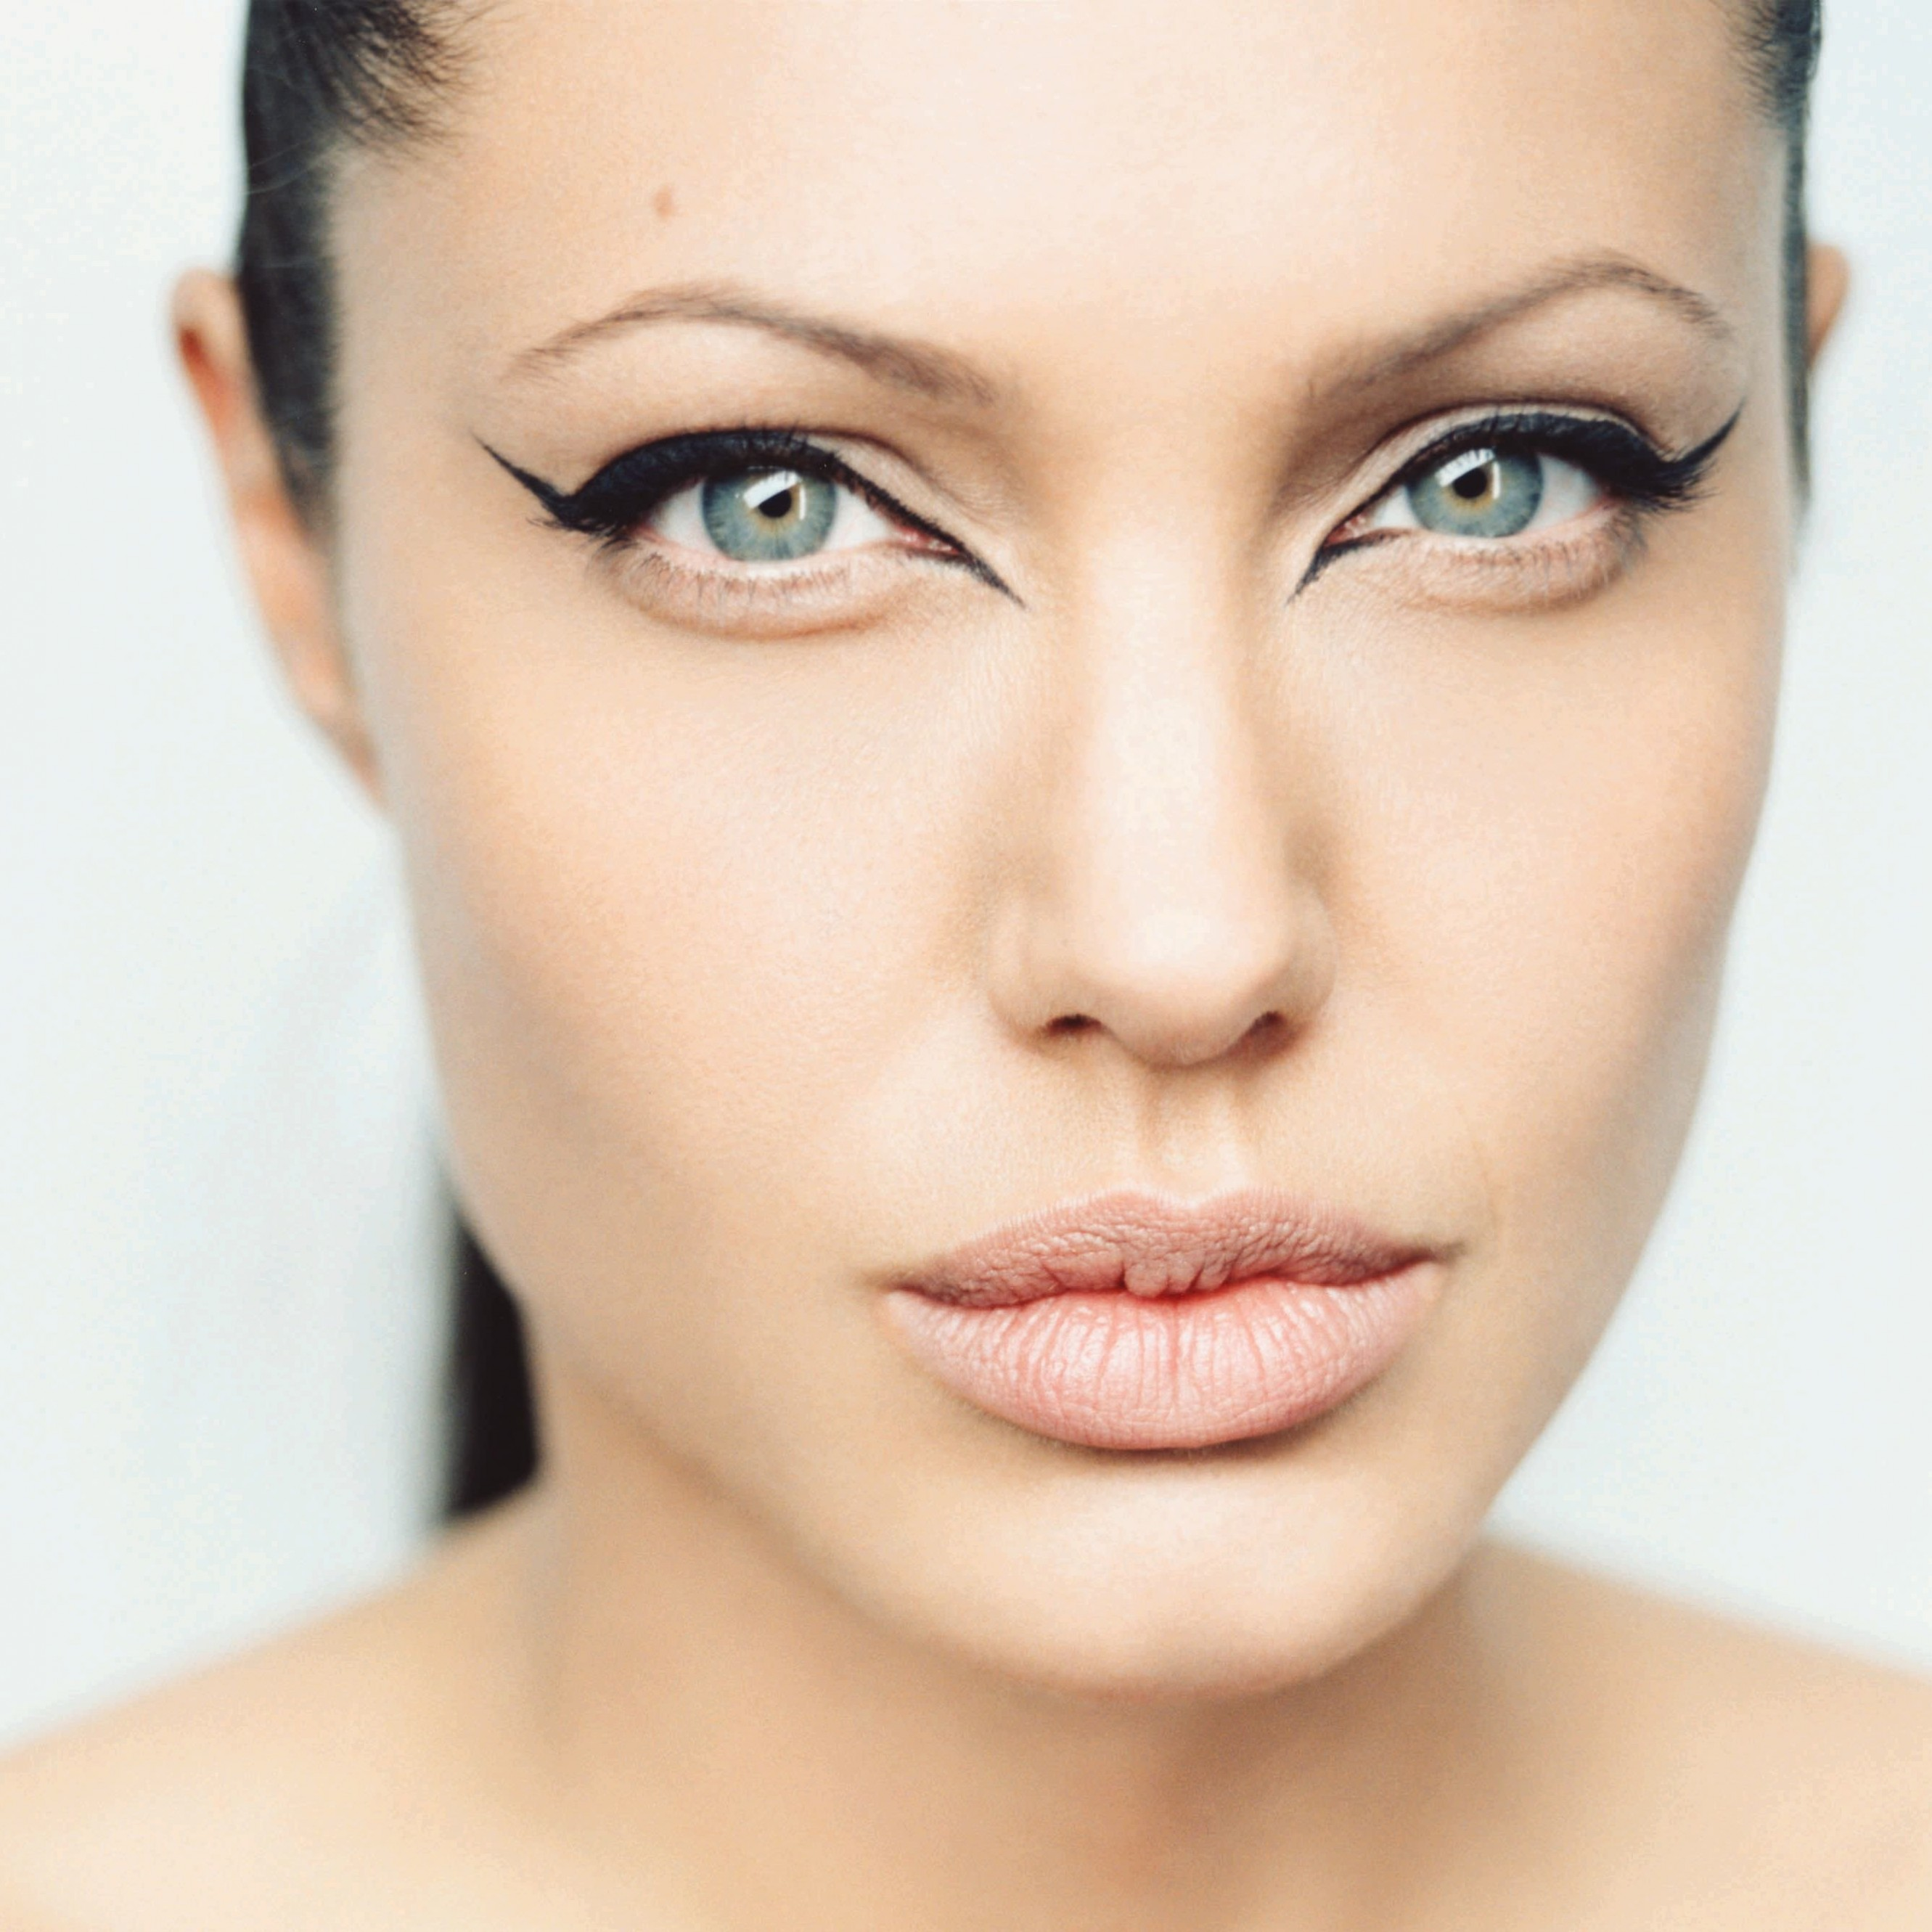 Angelina Jolie Wallpaper for Apple iPhone 6 Plus